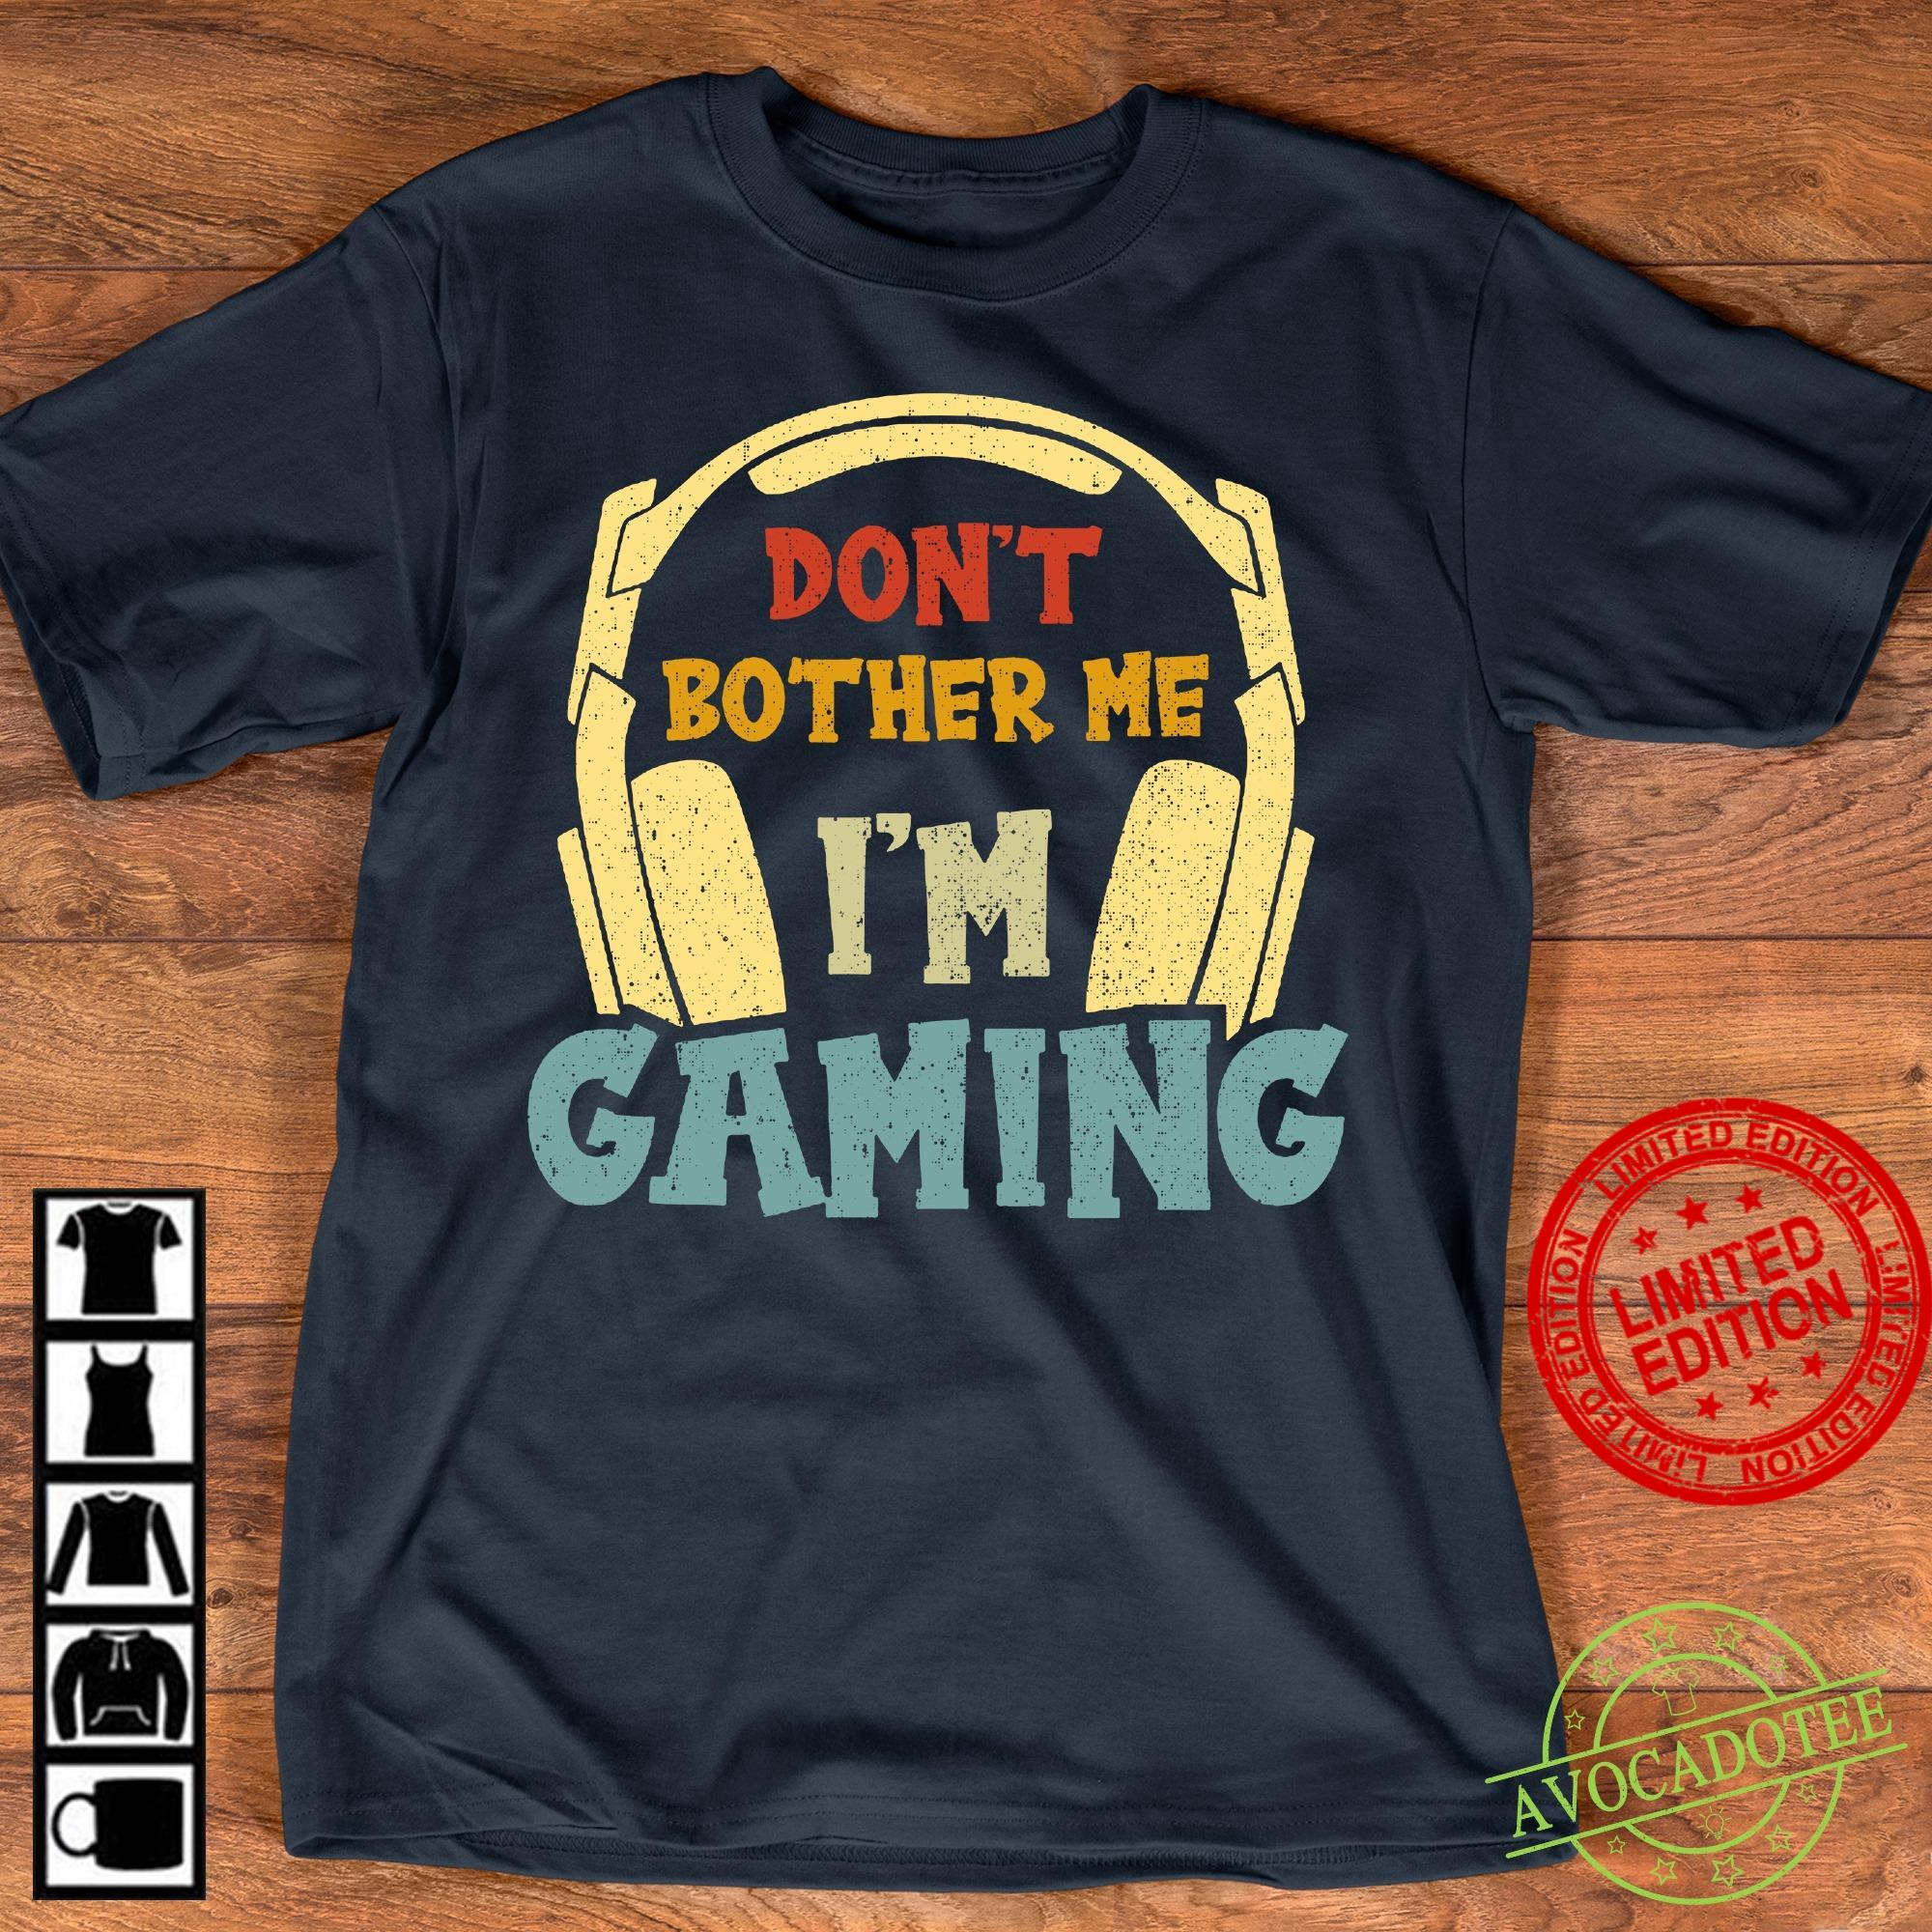 Don't Bother Me I'm Gaming Shirt